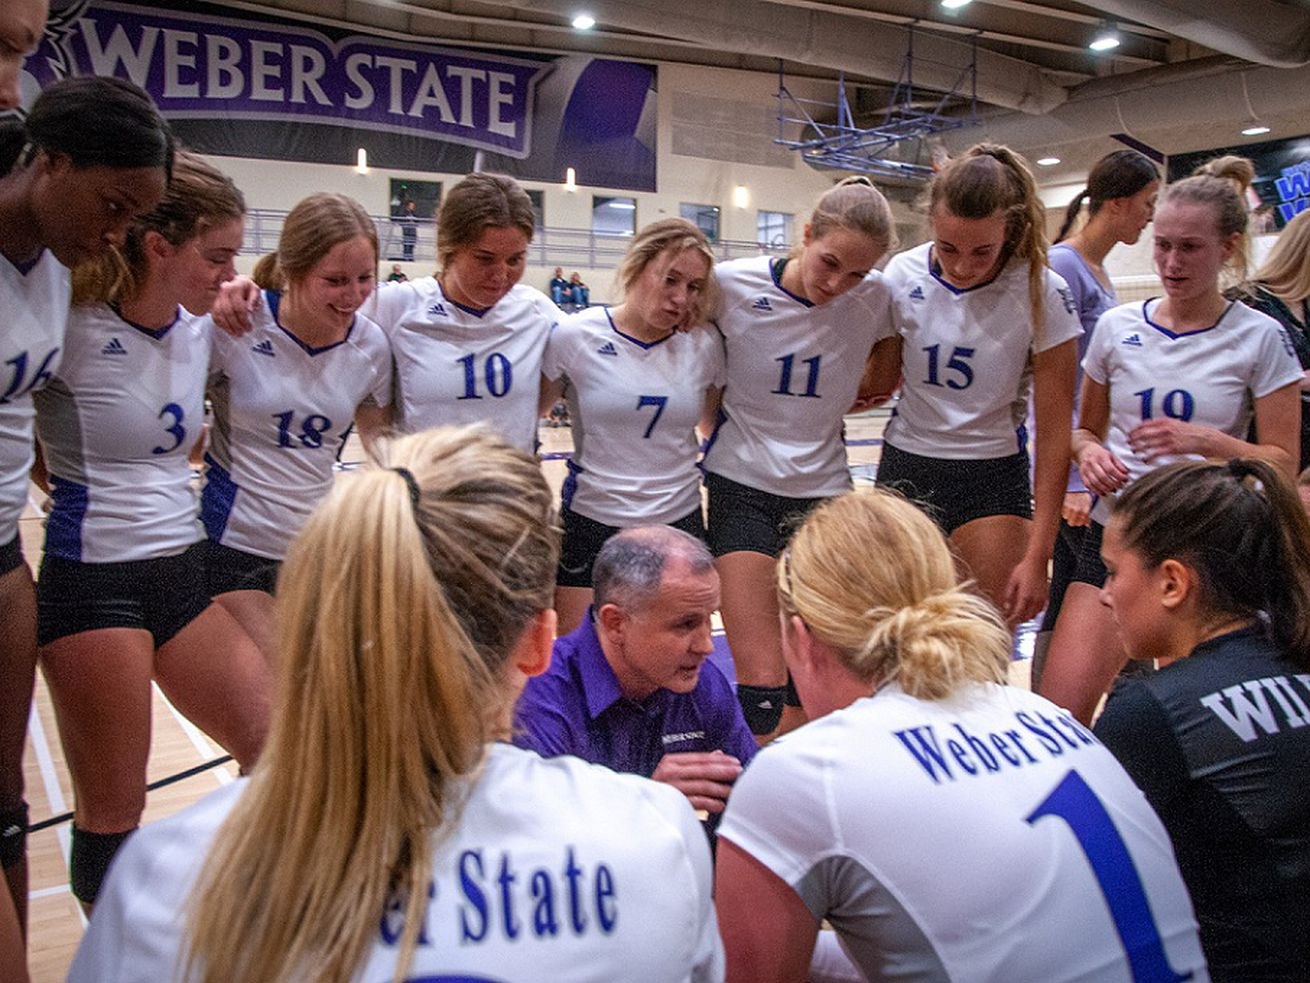 NCAA volleyball: Weber State gives No. 1 Wisconsin a decent test, but falls 3-0 in second-round match at nationals